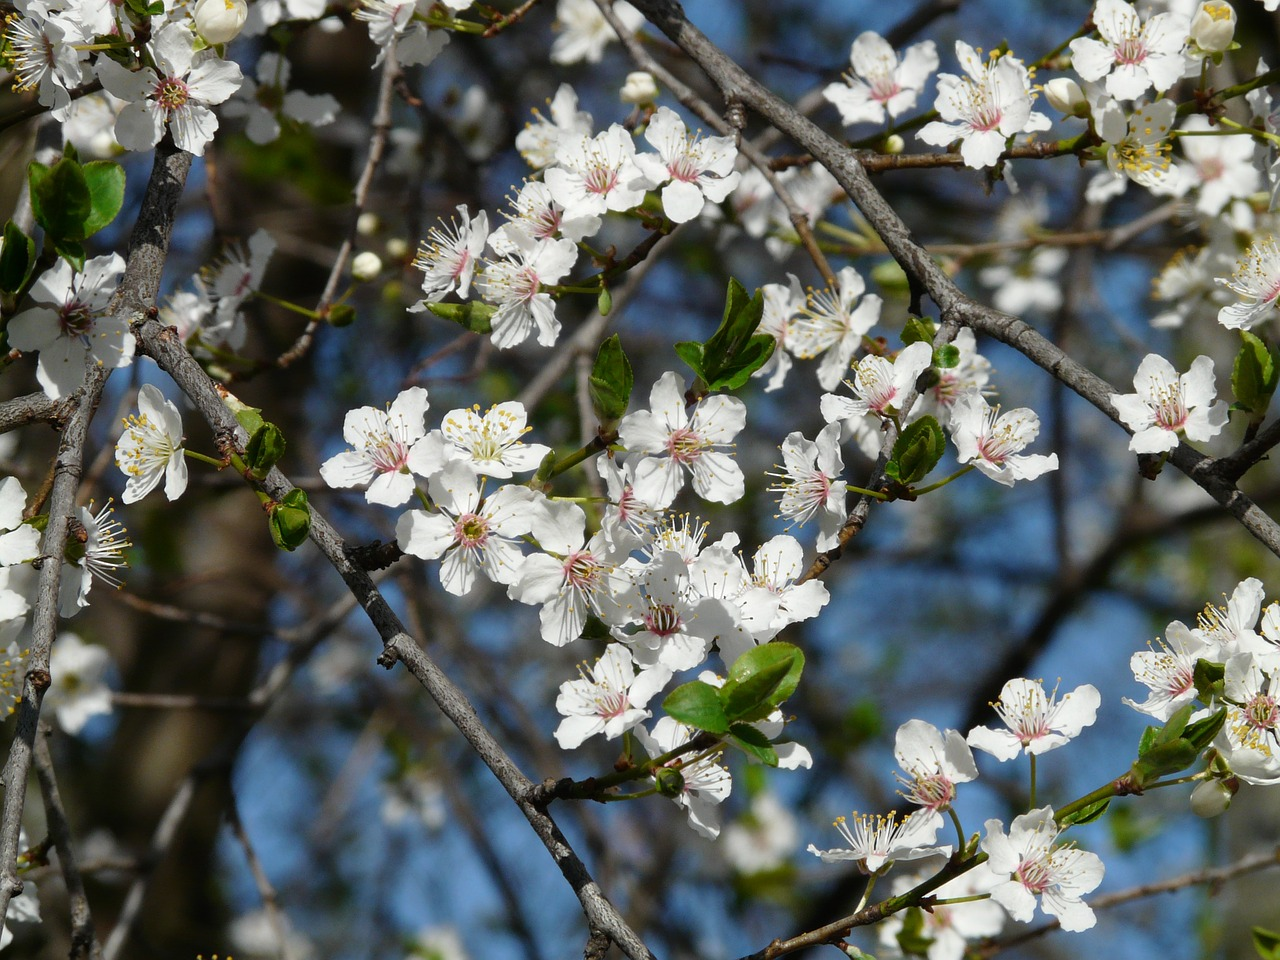 wild plum,blossom,bloom,tree,branch,american wildpflaume,prunus americana,prairie plum,nature,free pictures, free photos, free images, royalty free, free illustrations, public domain